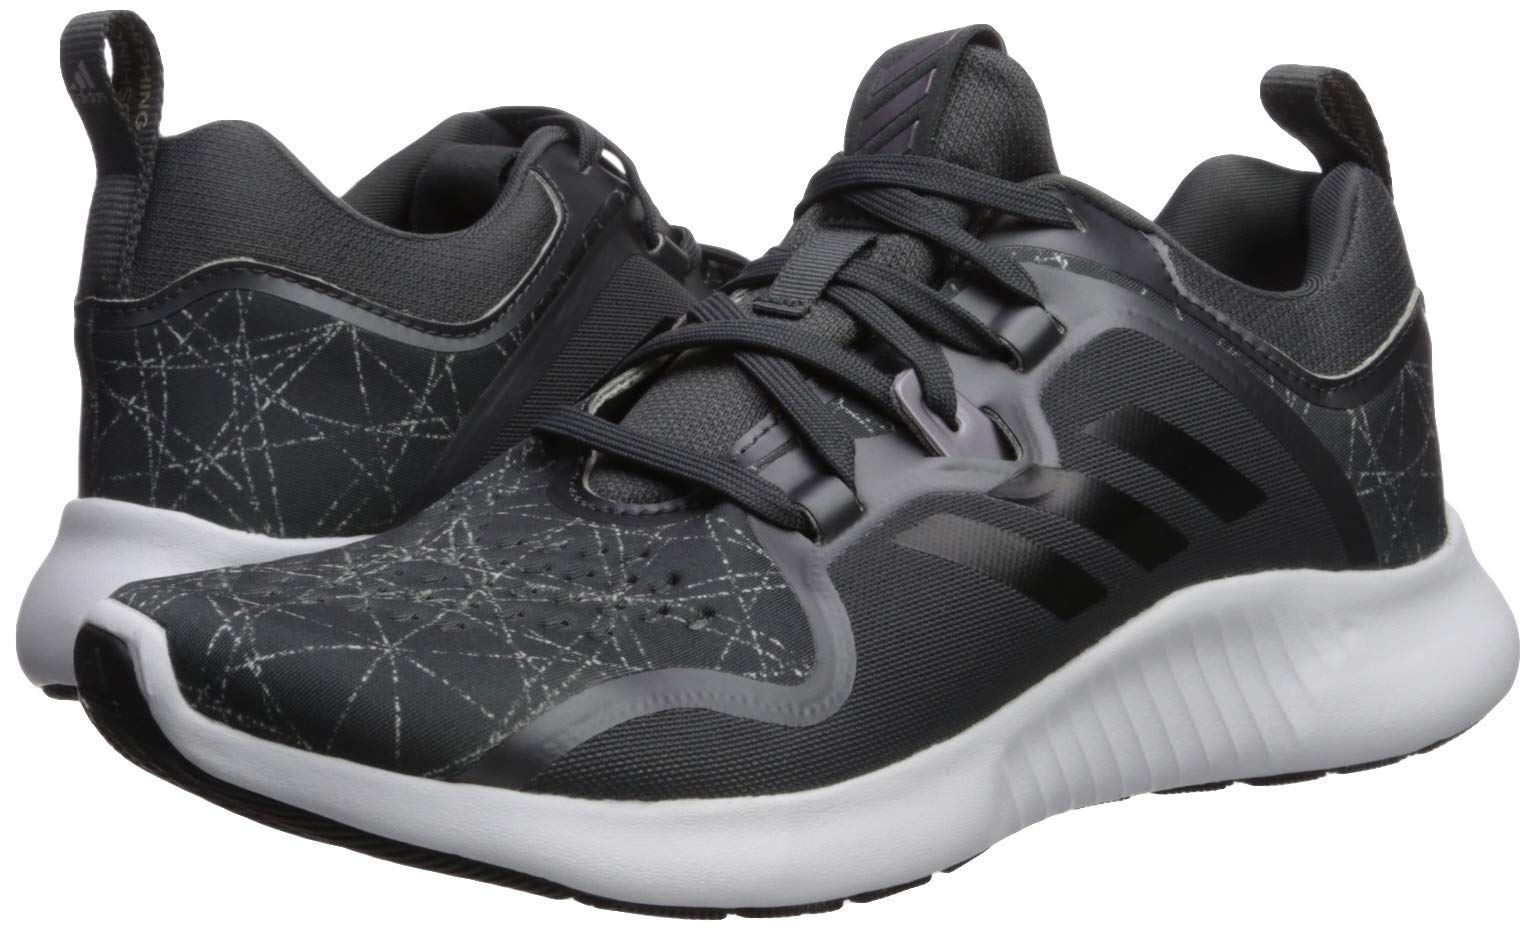 adidas Women's Edgebounce Grey/Black/White 5.5 M US by adidas (Image #6)